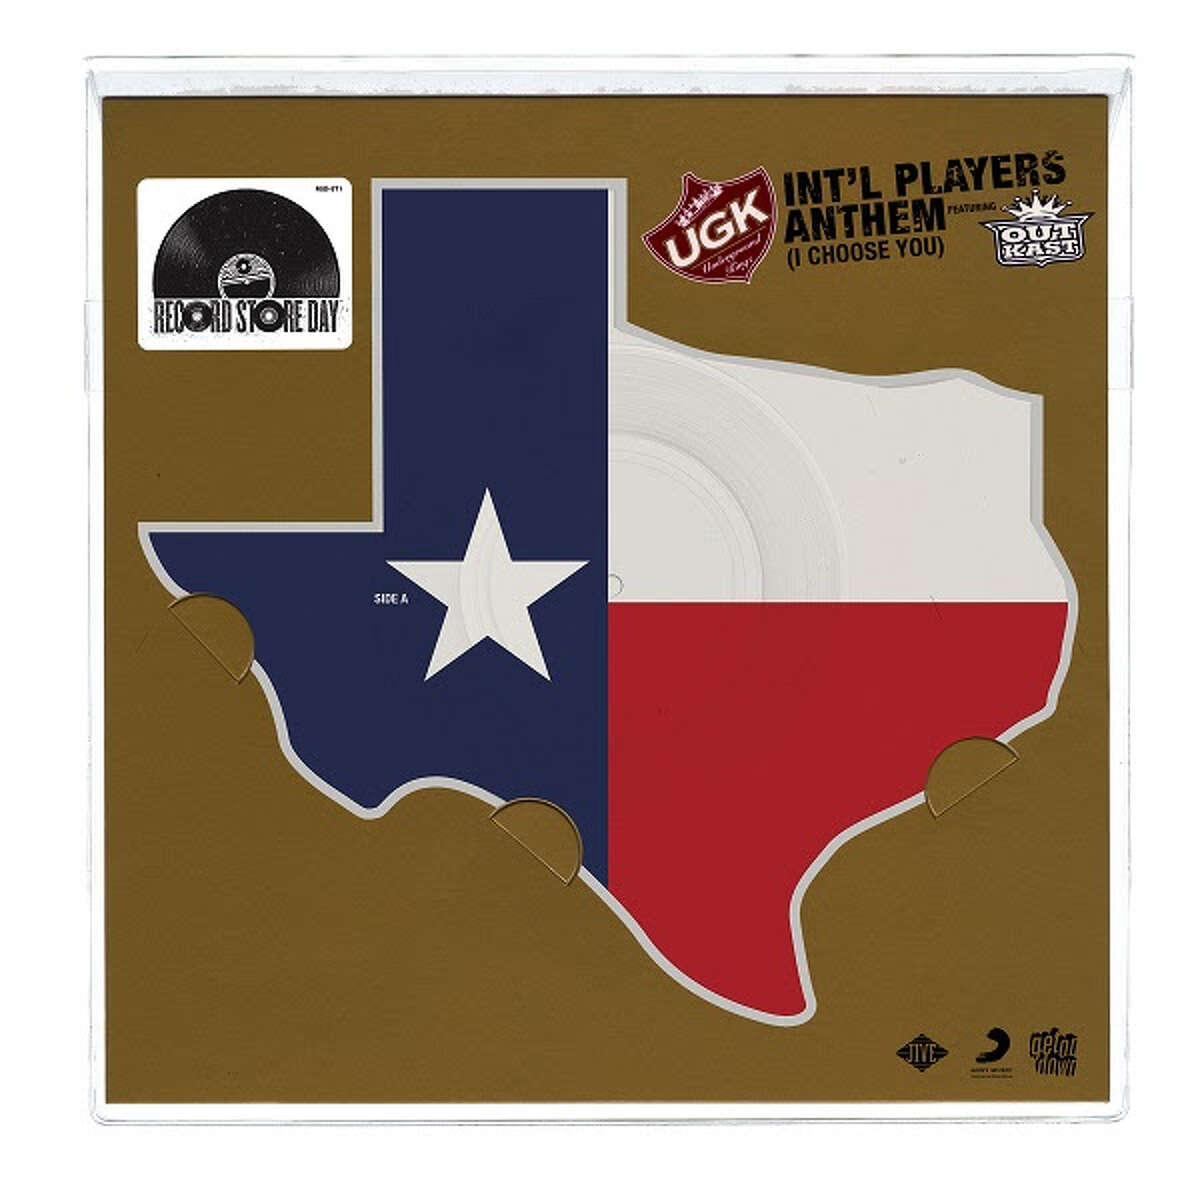 On November 25, Black Friday, Boston-based vinyl imprint Get On Down will release a Texas-shaped vinyl copy of the tag-team single